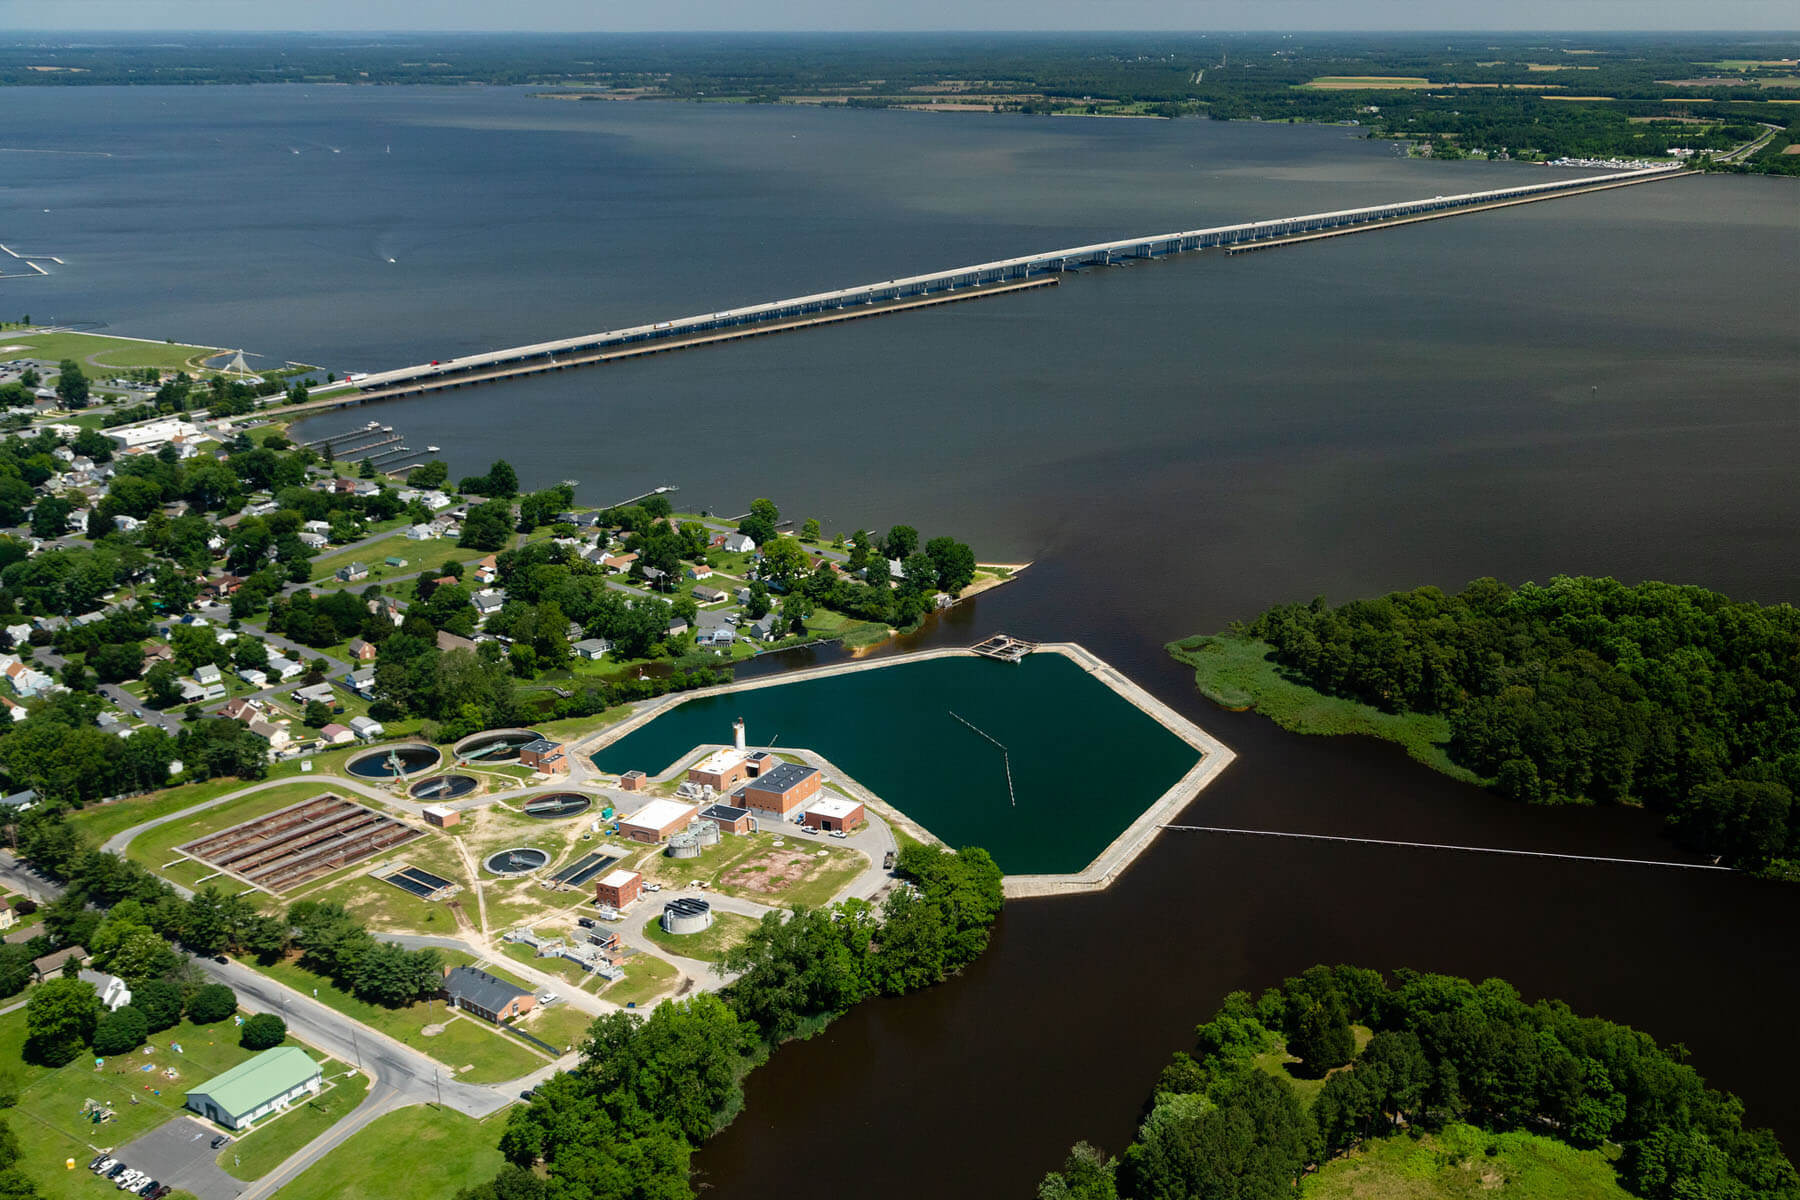 How To Reduse Pollution Chesapeake Bay Program Partnership Exceeds 2017 Pollution Reducing